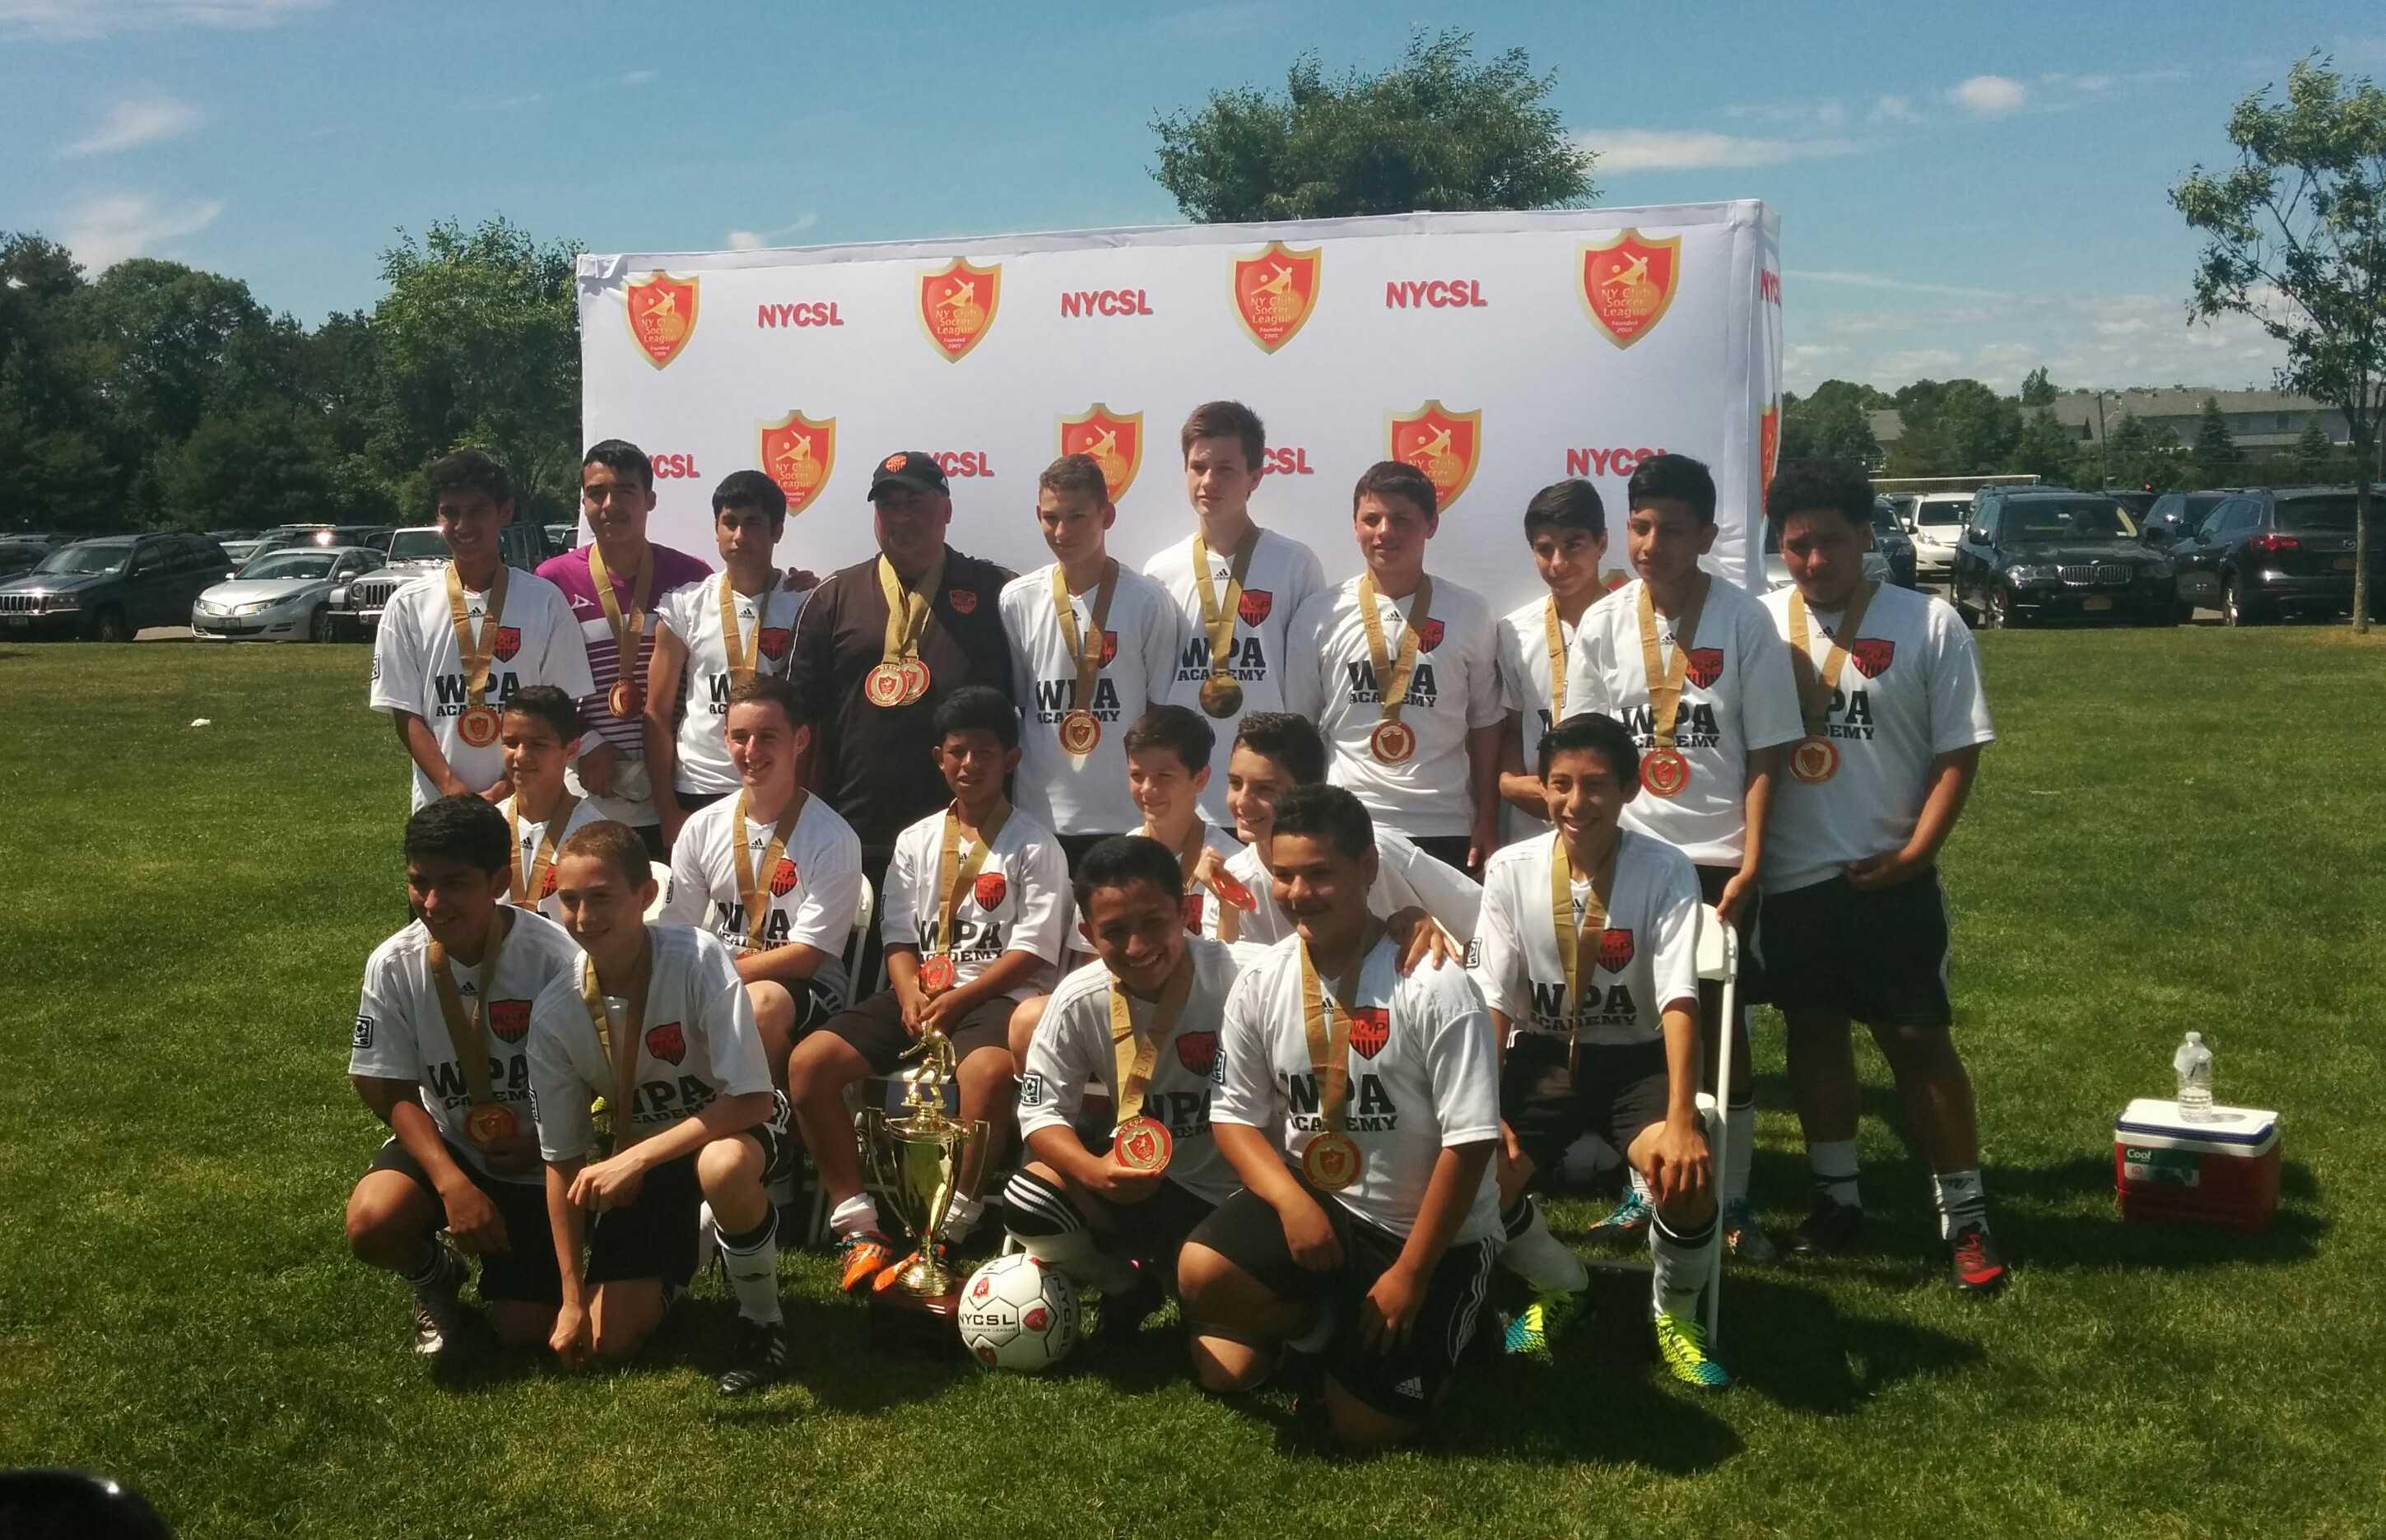 NY Cup Silver Champion